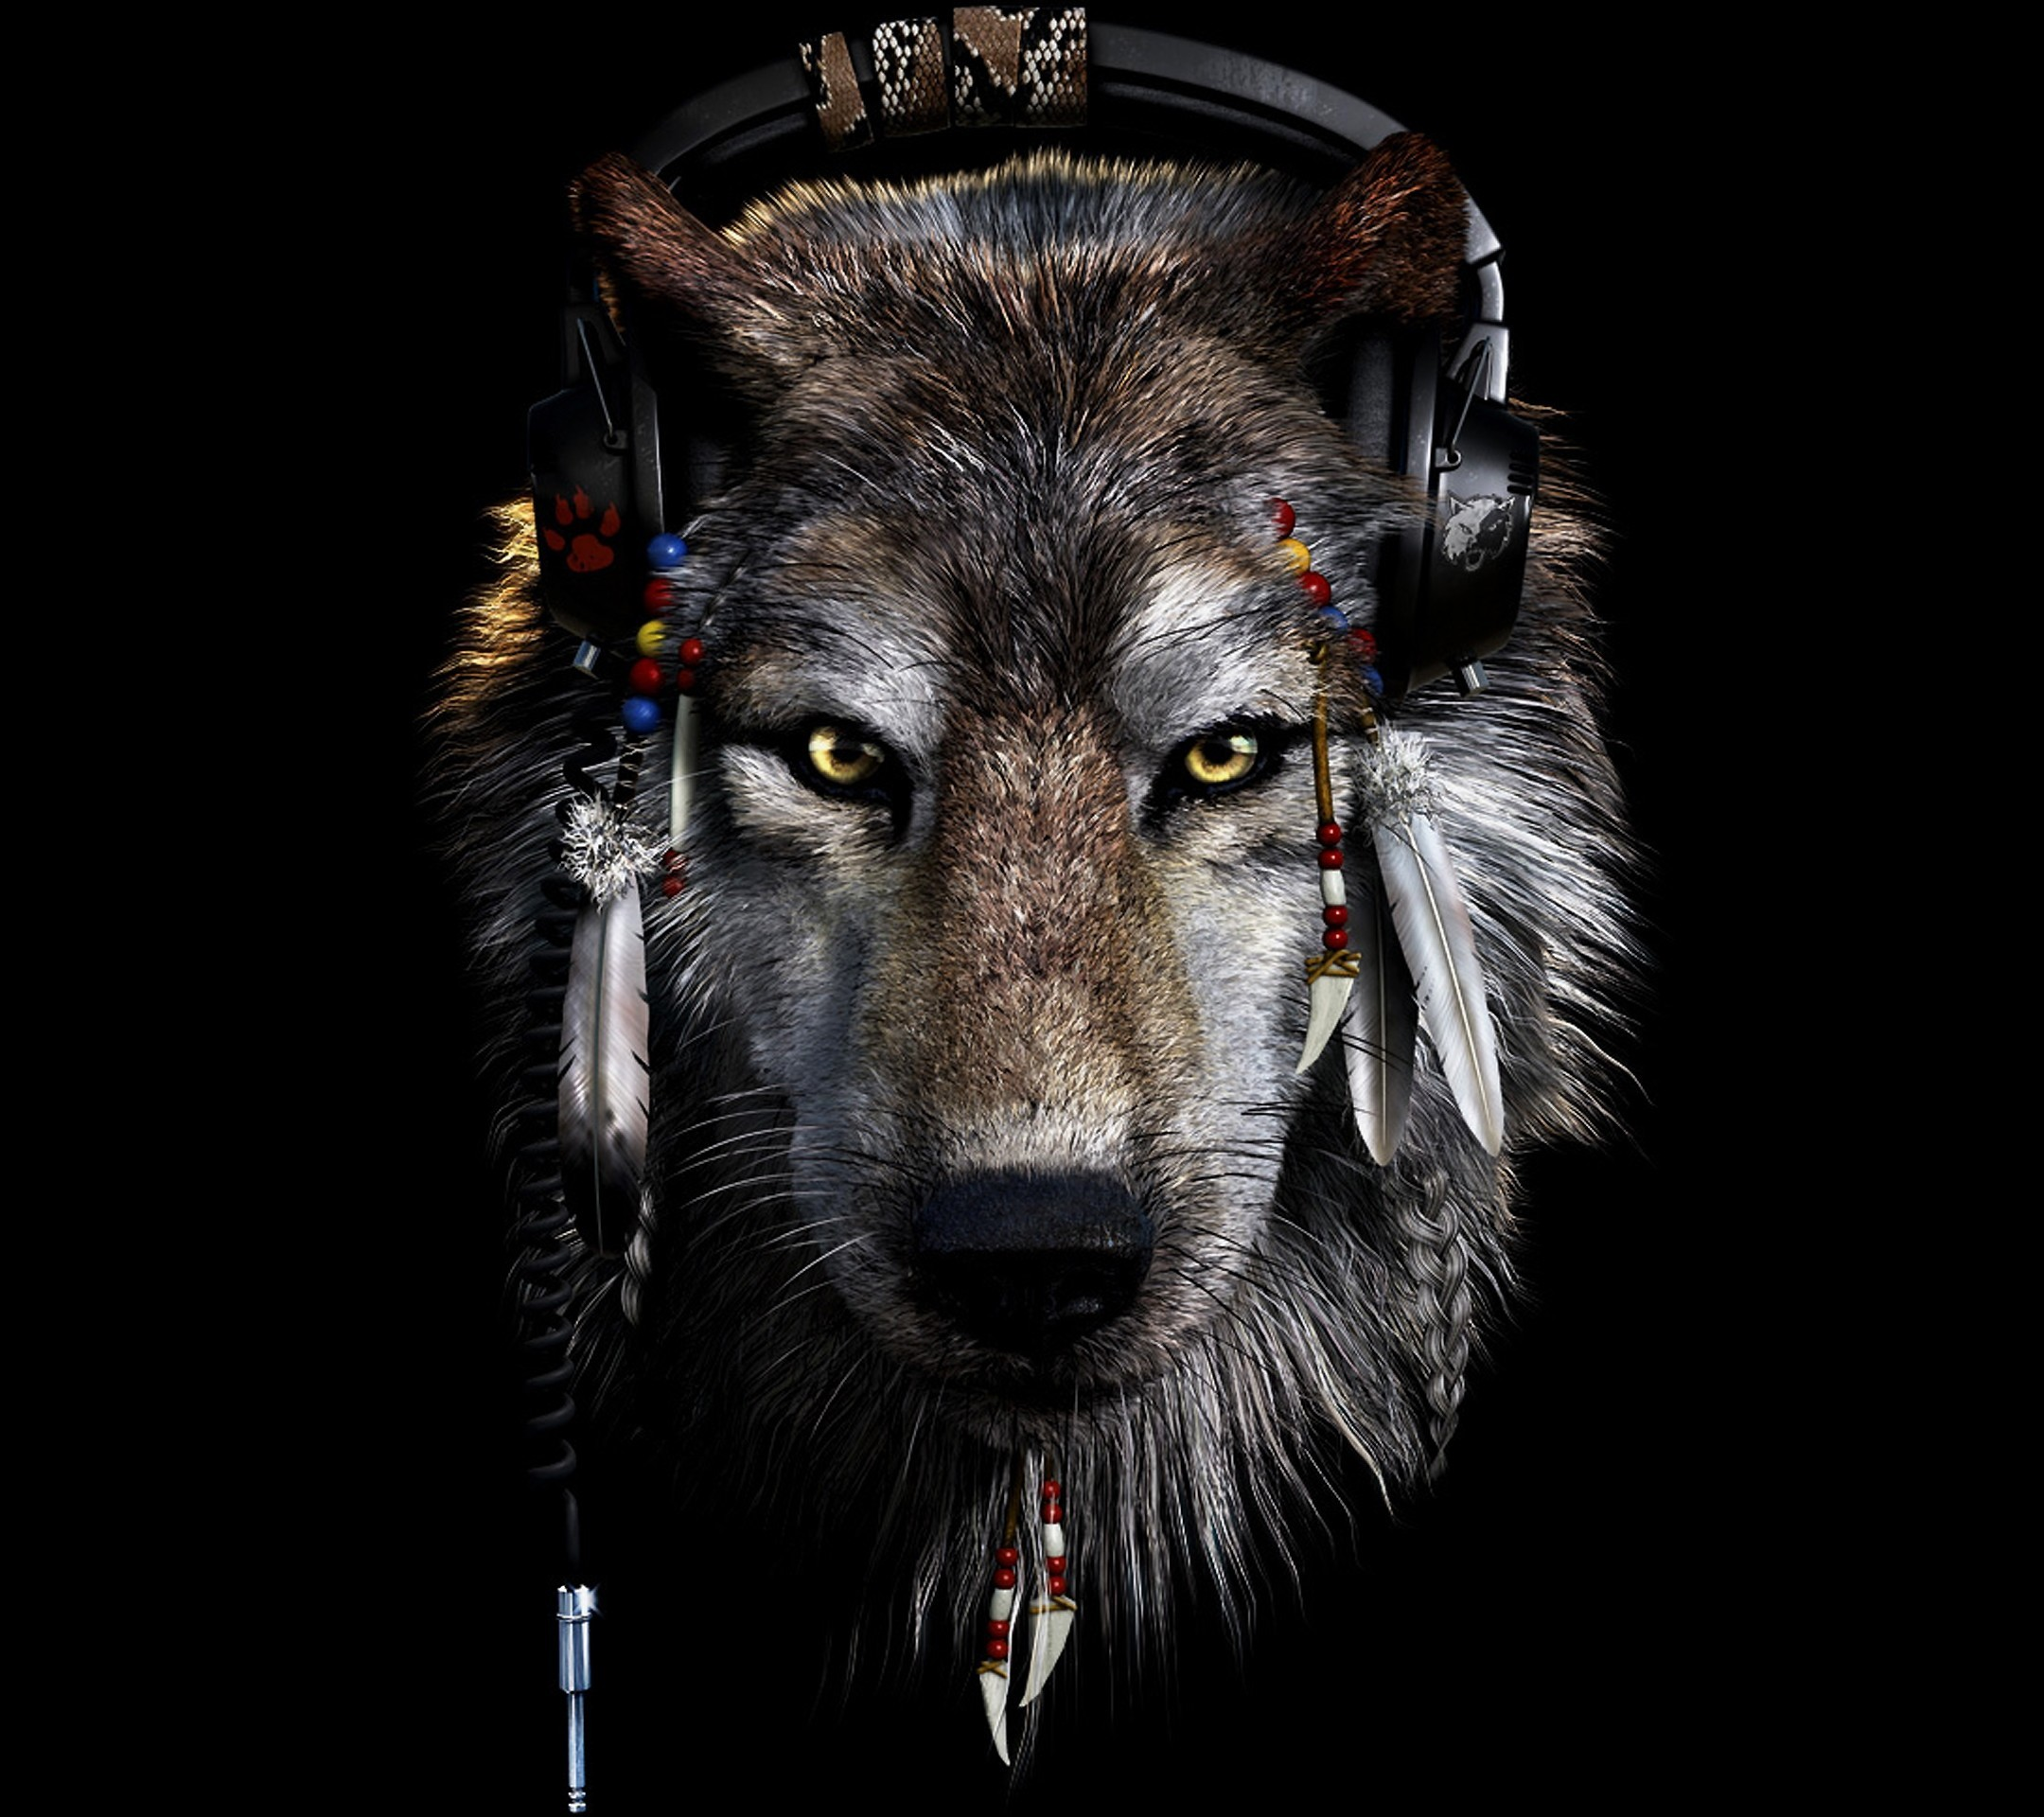 Wolf Iphone 6 Wallpaper Posted By Sarah Simpson